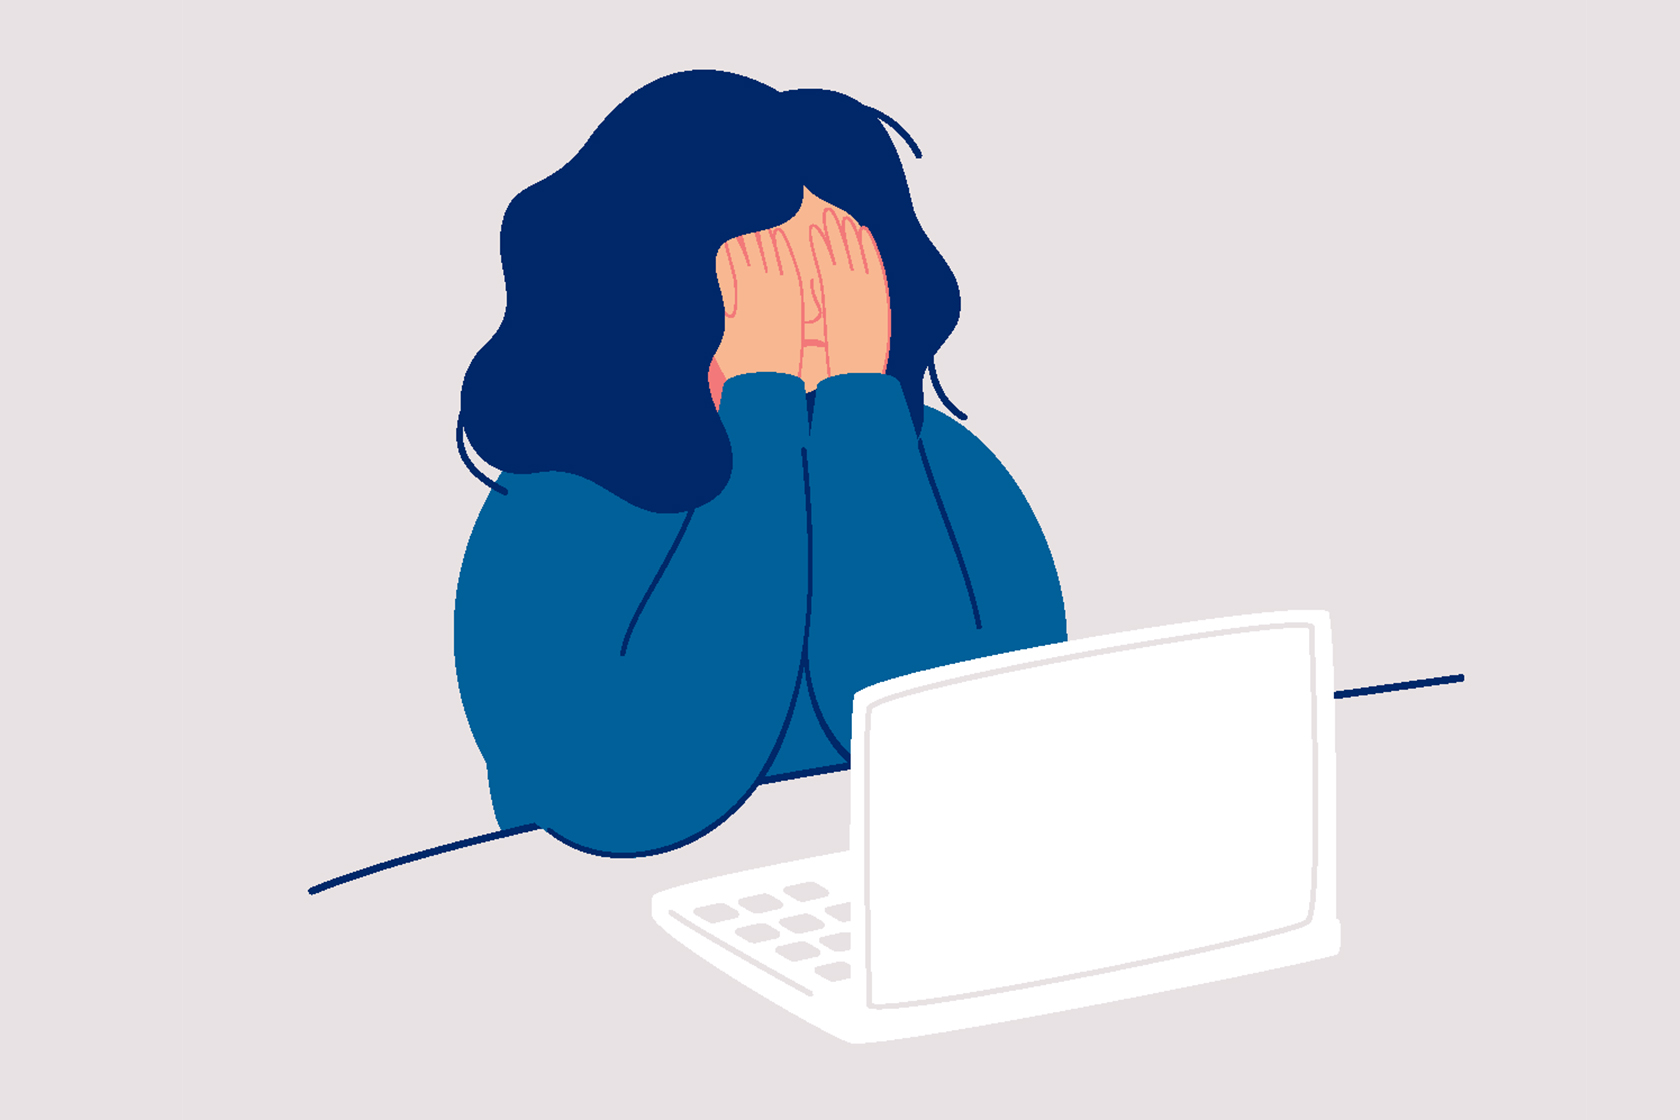 Mental health at work - women who have been fired discuss